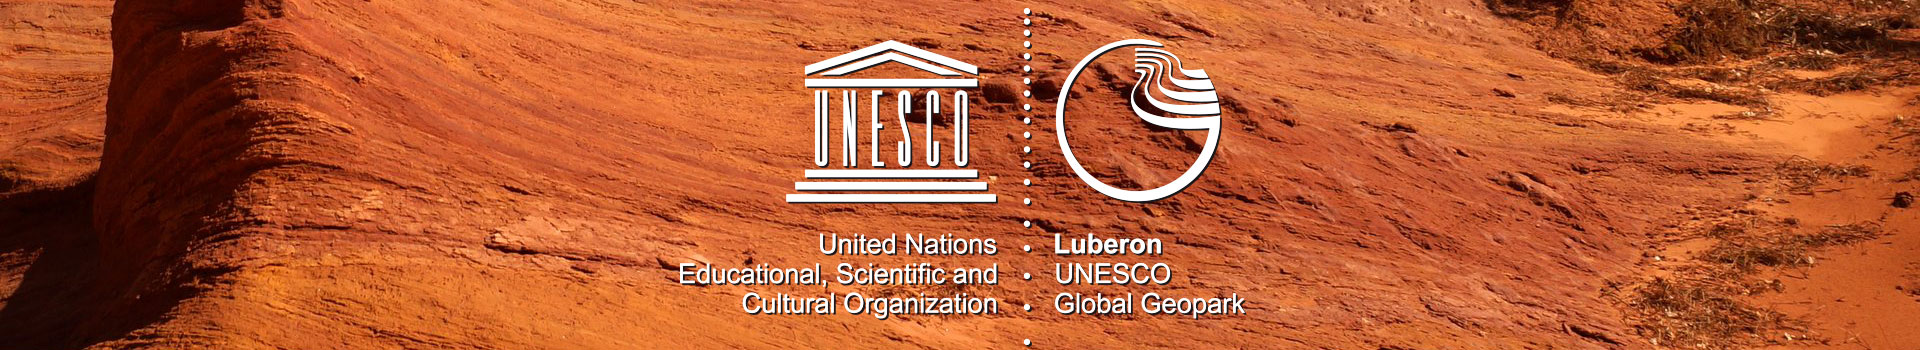 Luberon UNESCO Global Geopark